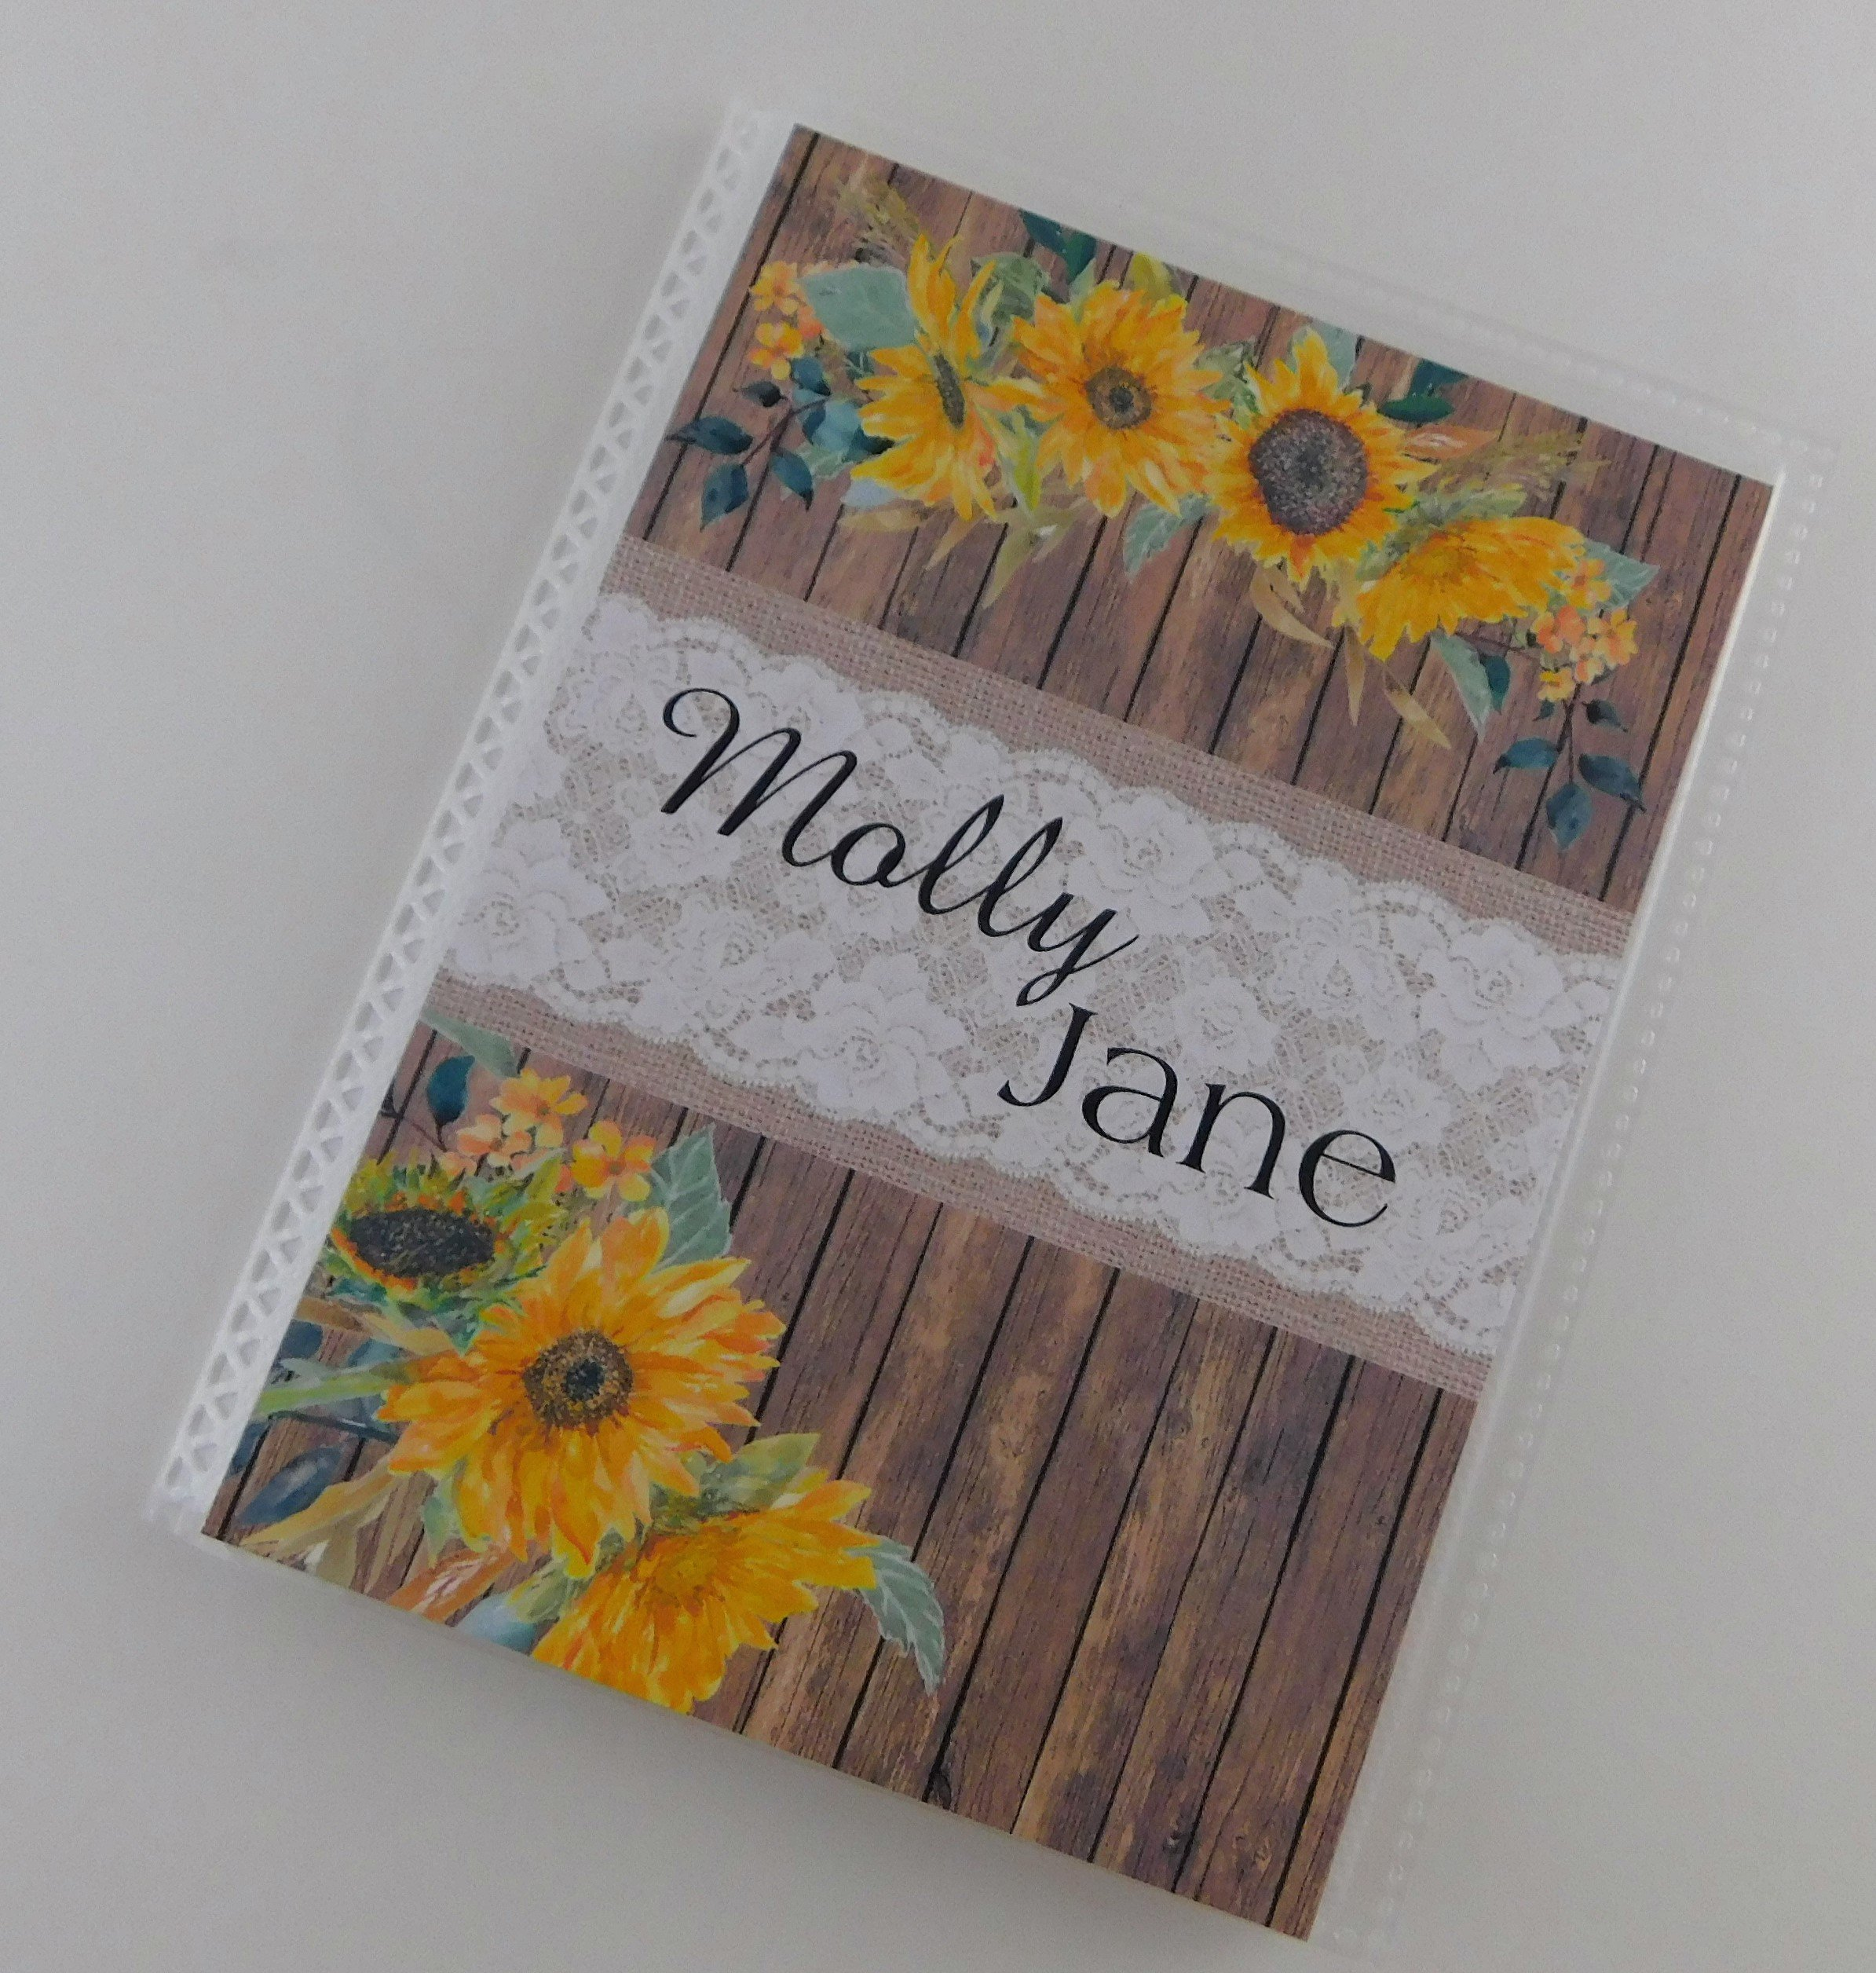 Photo Album IA#920 Baby Girl Engagement Anniversary Wedding Bridal Shower Gift 4x6 or 5x7 Picture NOT REAL PRINTED Wood Sunflower Lace Burlap